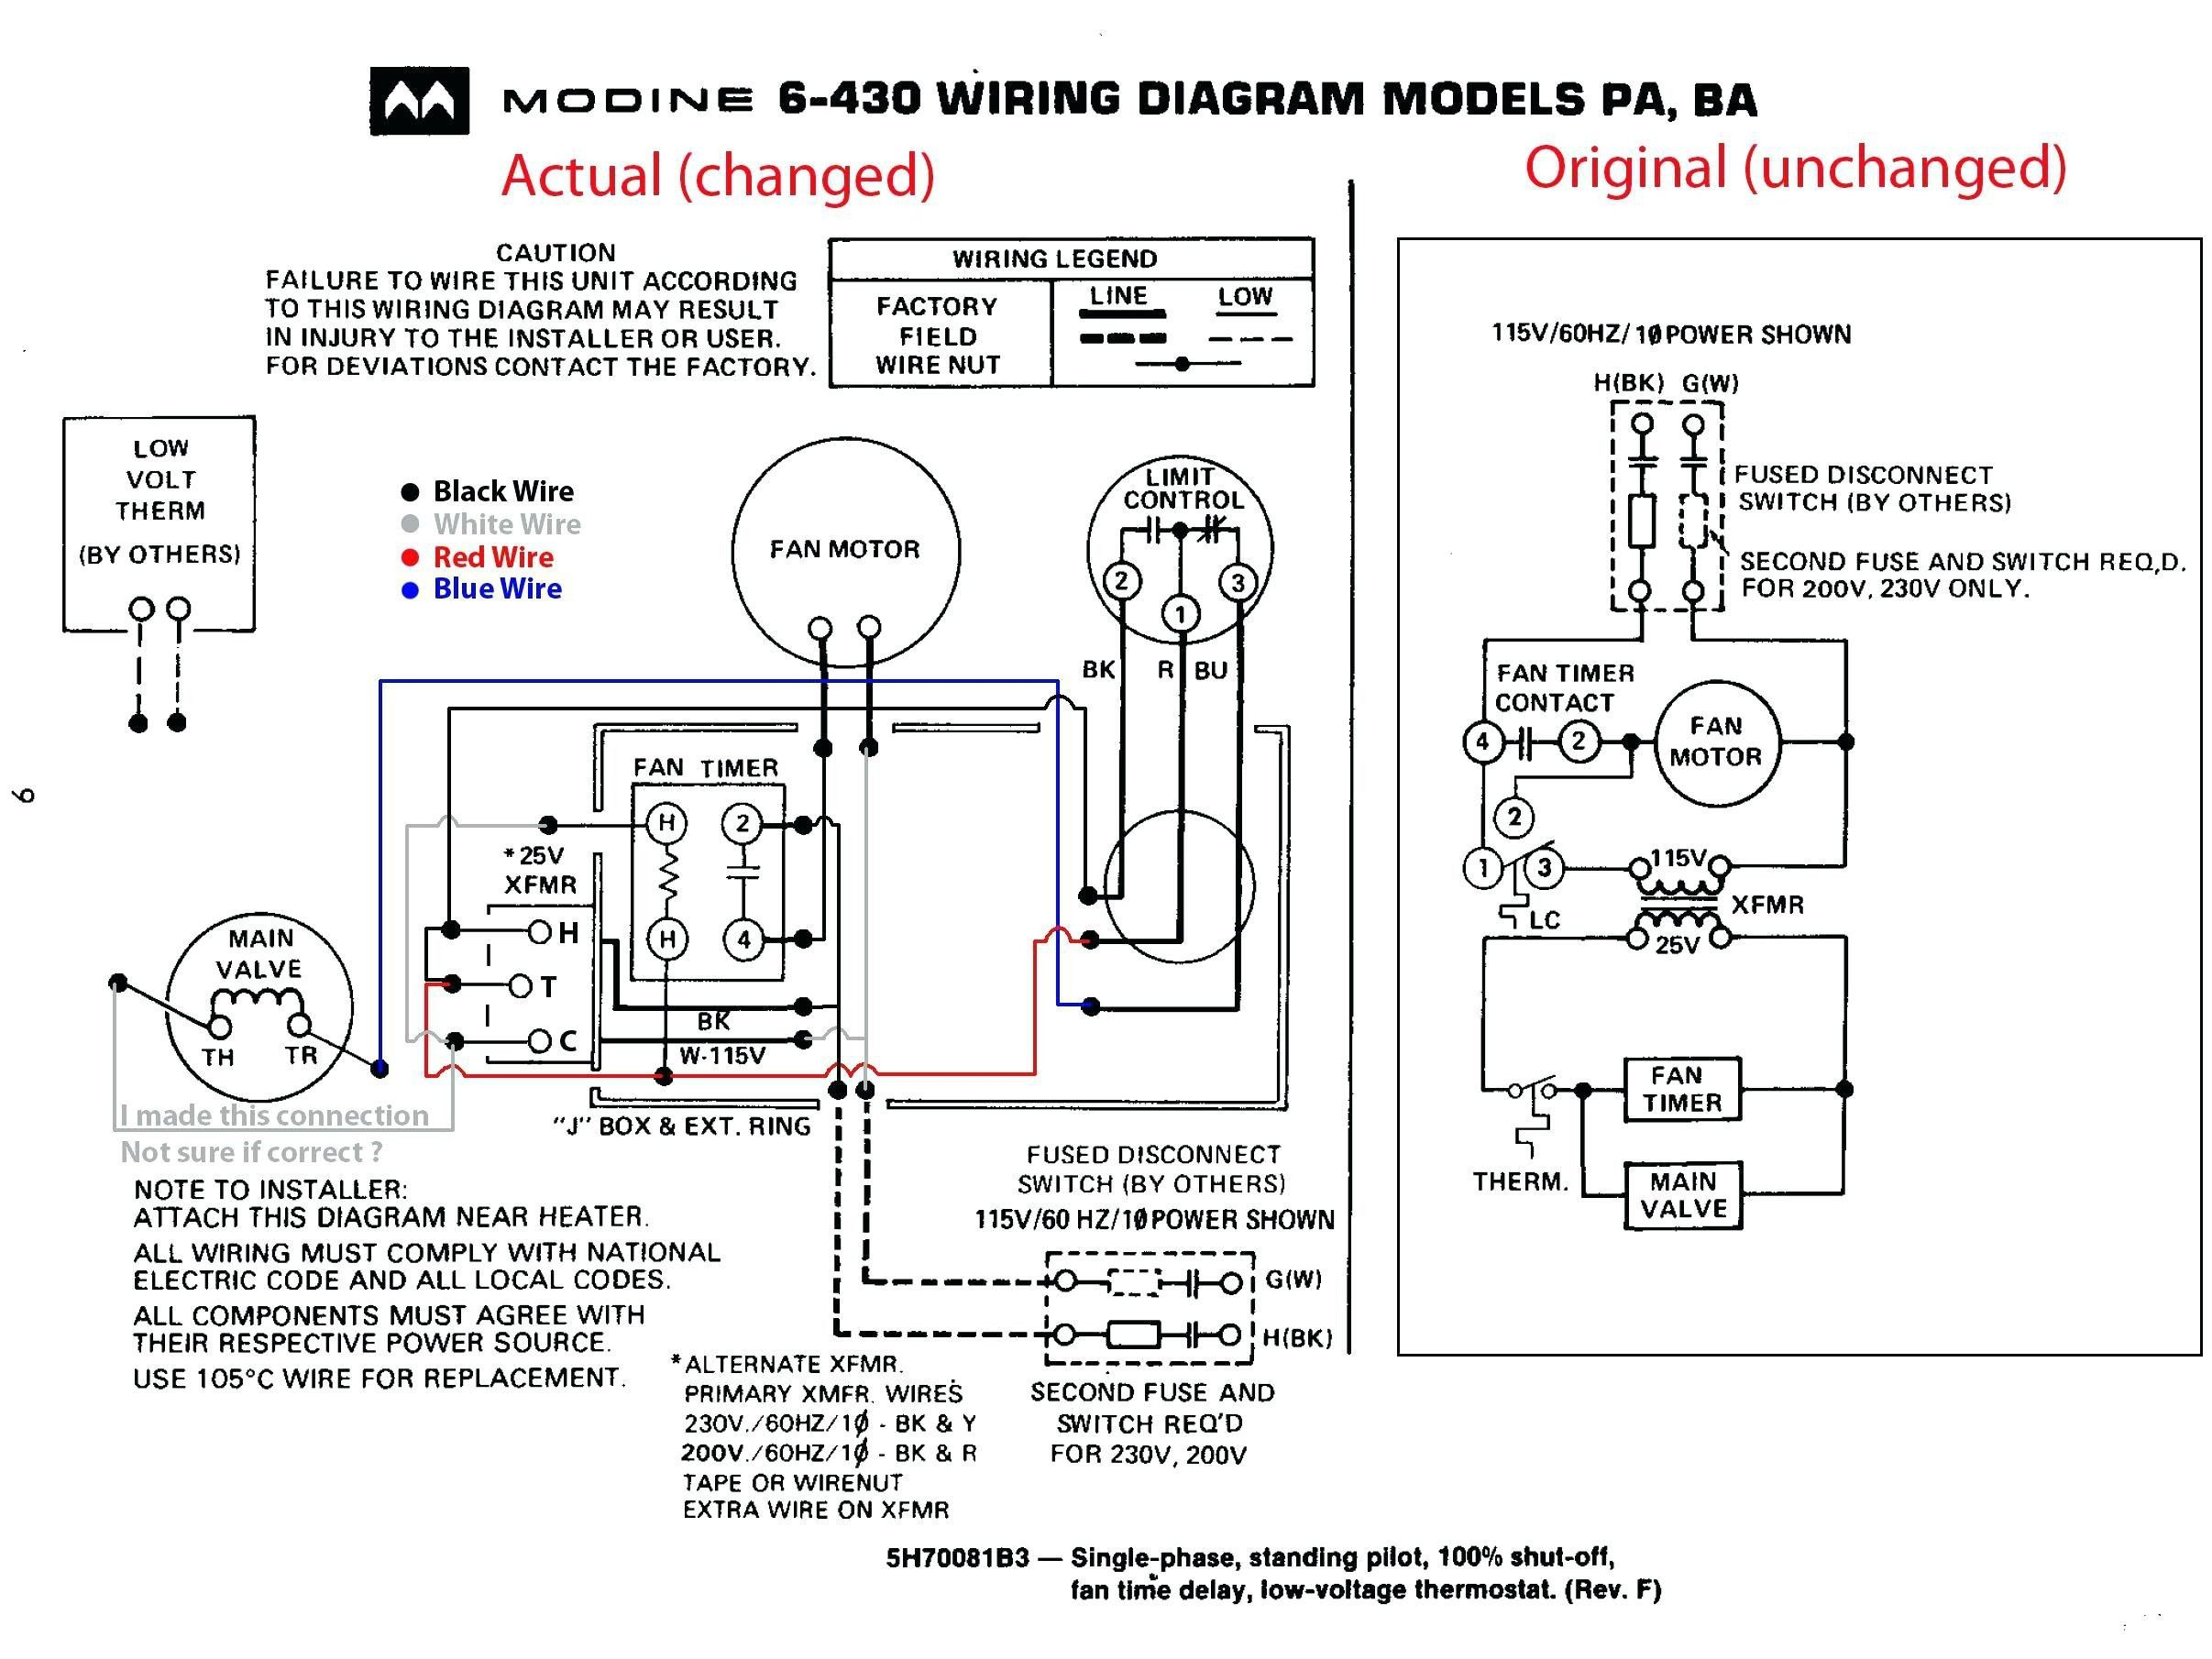 Unique Stelpro Baseboard Heaters Wiring Diagram Diagram Diagramtemplate Diagramsample